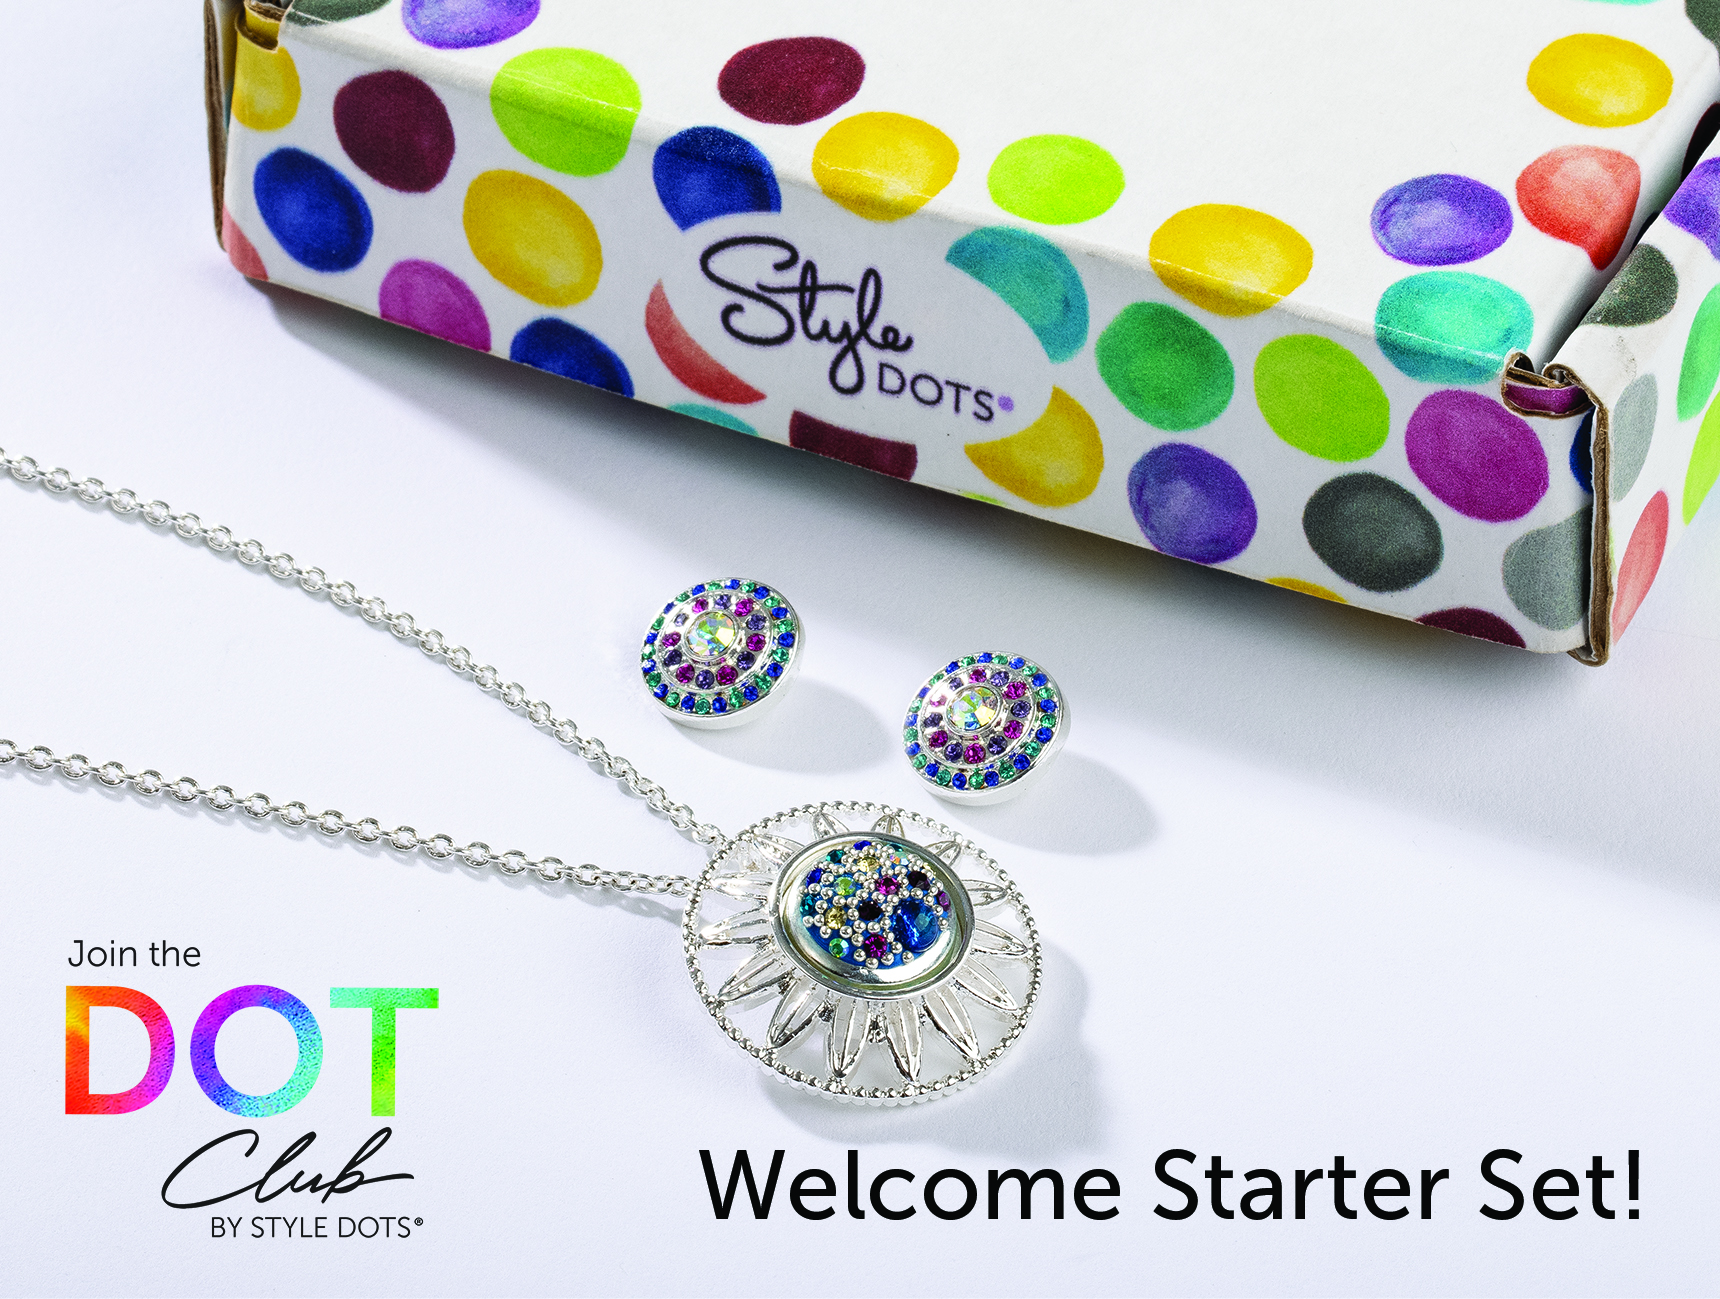 The Style Dots Logo box is shown with the Welcome Starter Set